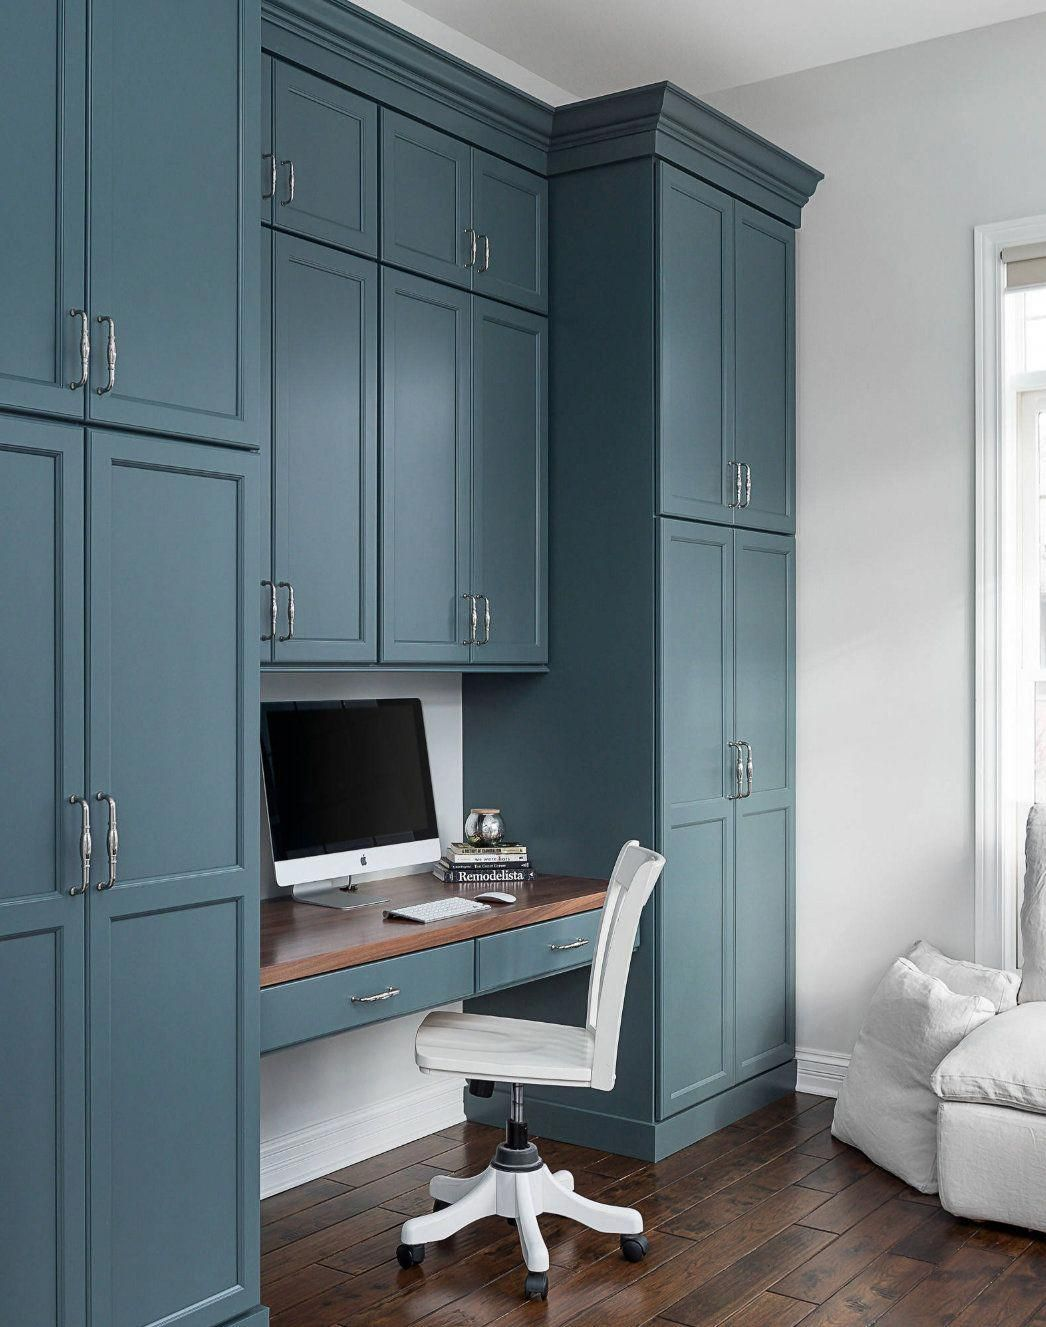 Benjamin Moore Knoxville Gray Color Spotlight Paintingkitchencabinets In 2020 Home Home Office Design Decor